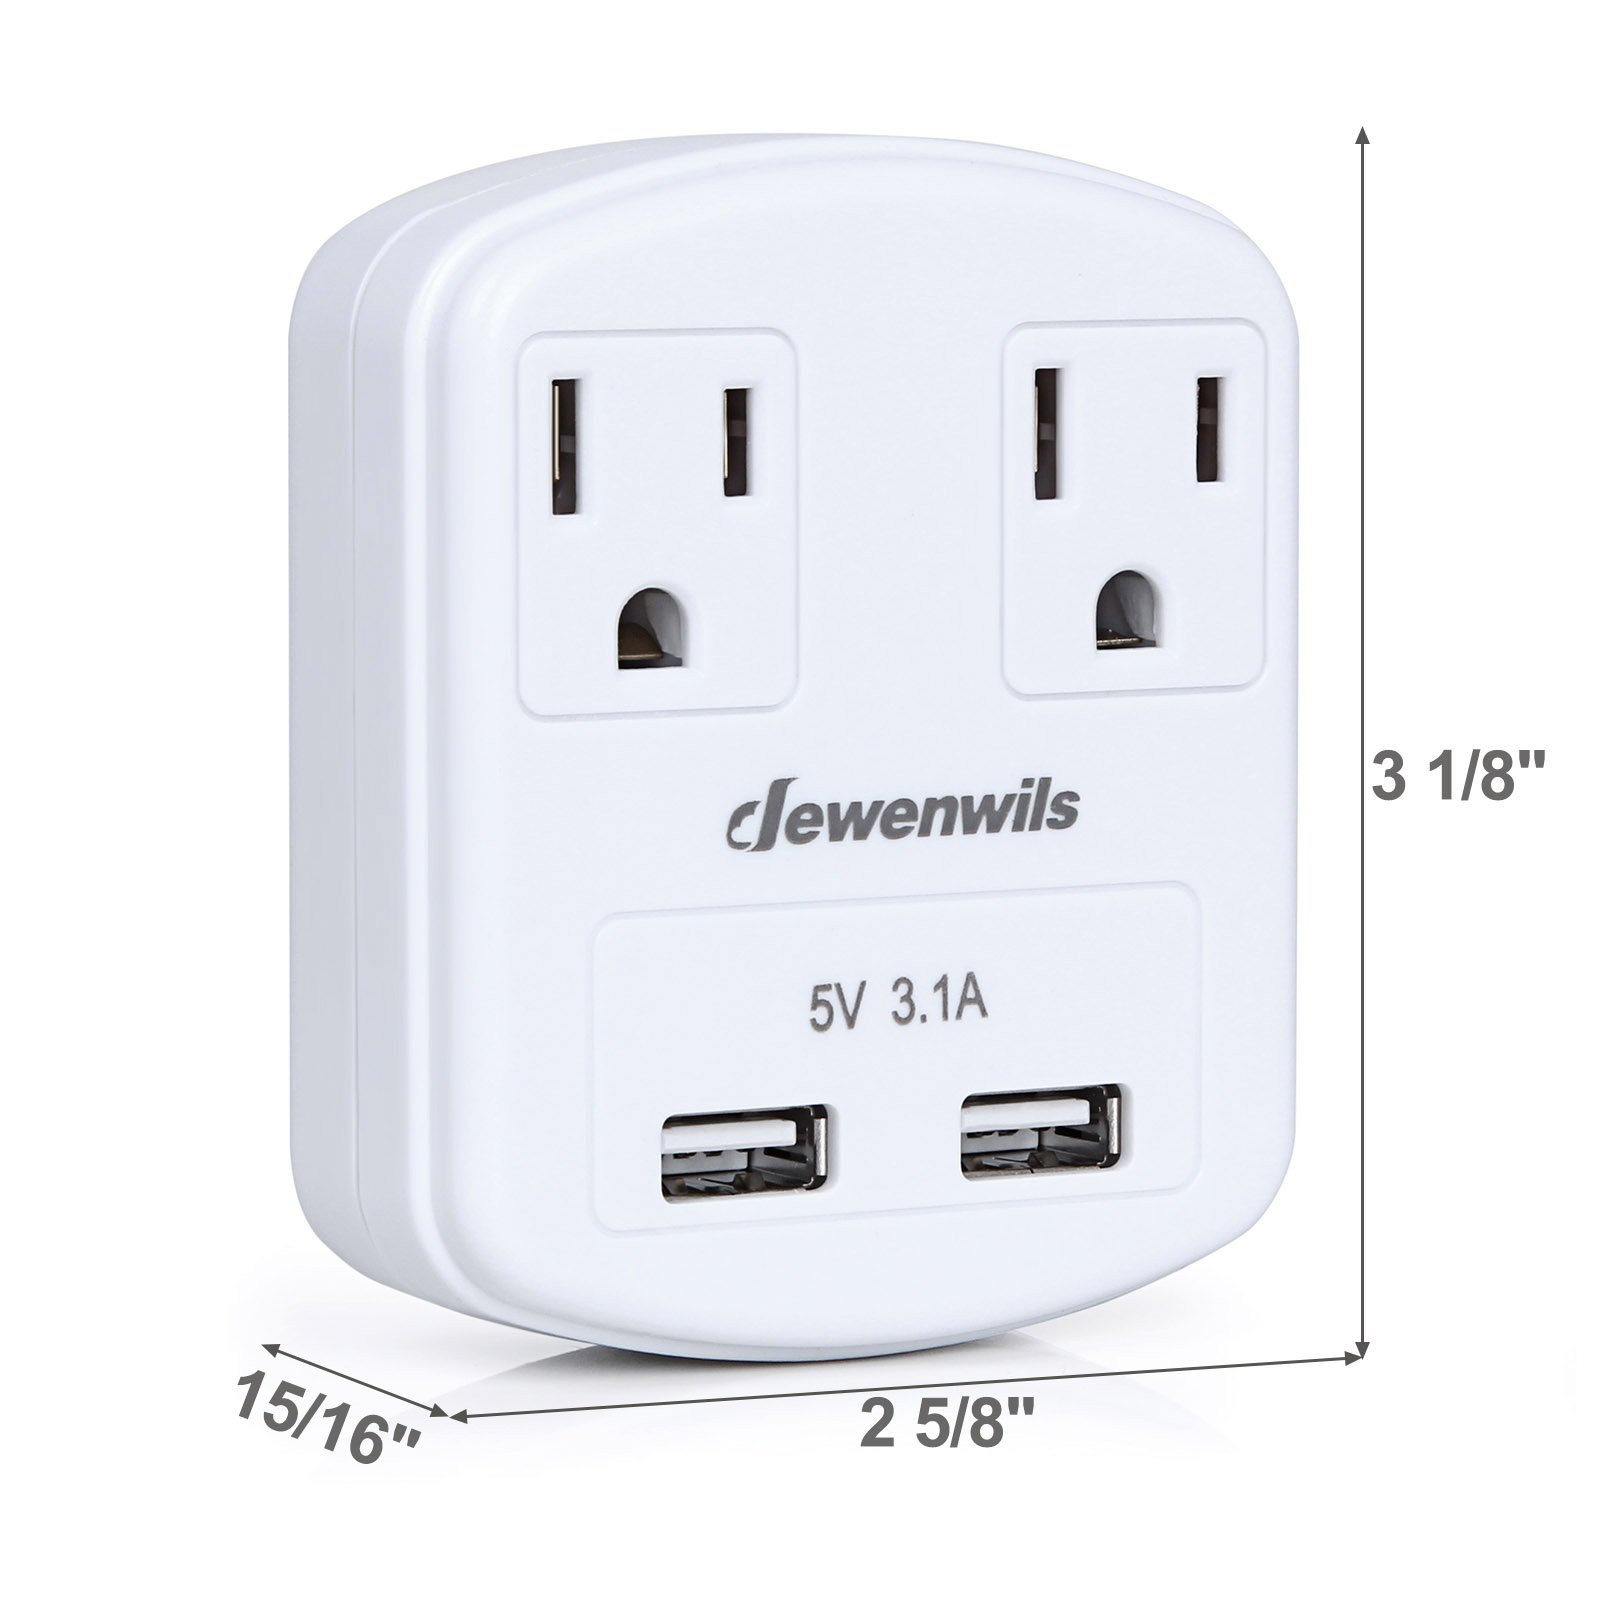 Dewenwils Multi Outlet Plug with 2 USB Ports (3.1A Total), Small Power Strip USB Charger for Cruise Ship/Hotel / Dormitory, Compatible with GFCI, ETL Listed, White by DEWENWILS (Image #7)